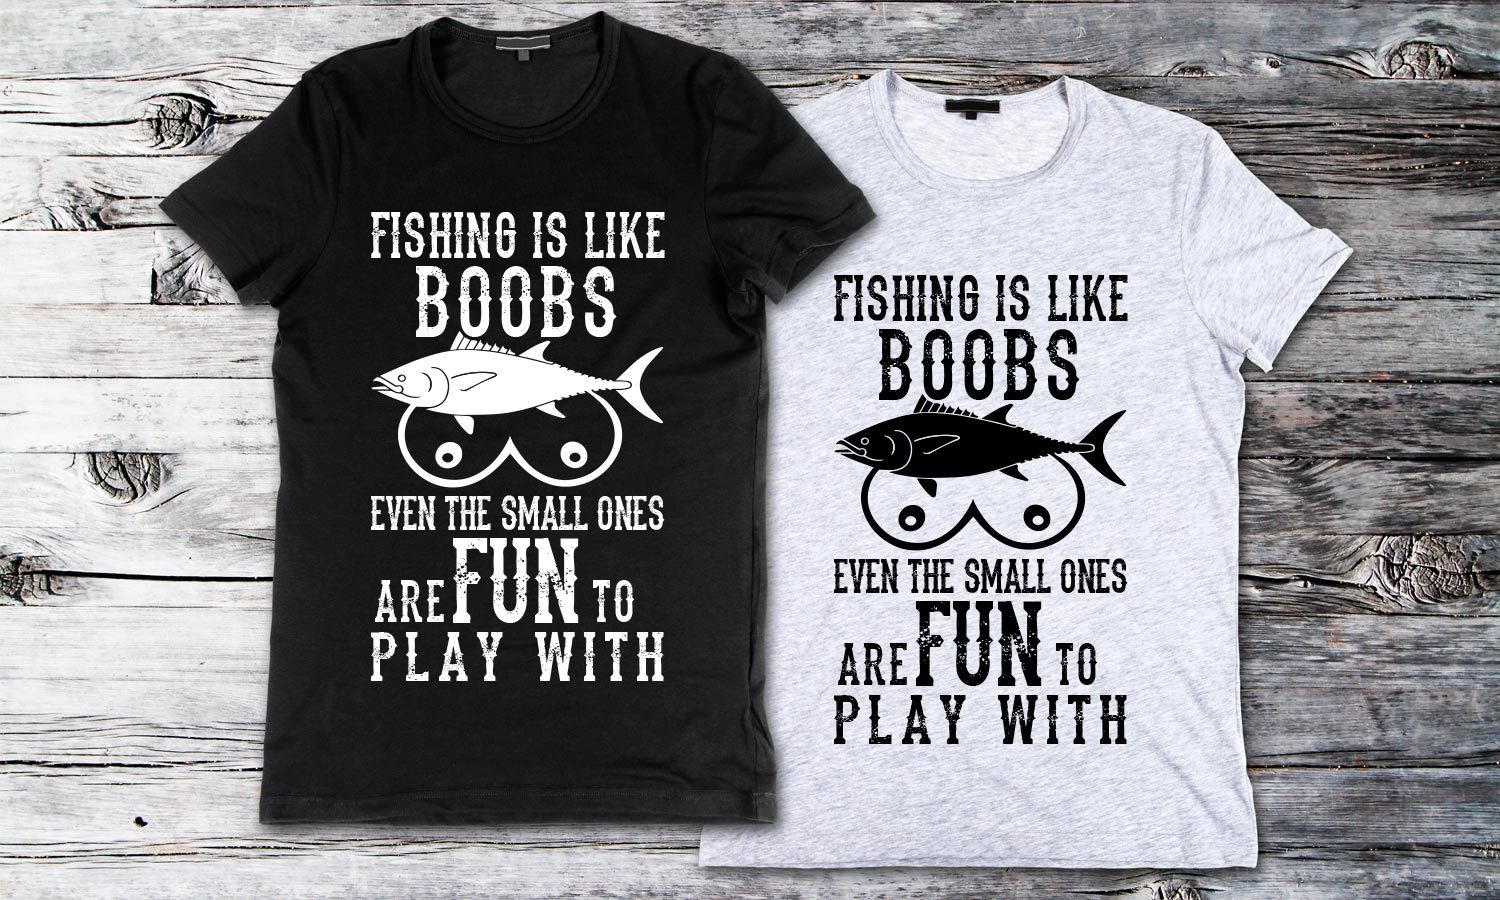 Fishing is Like - Printed T-Shirt for Men, Women and Kids - TS191